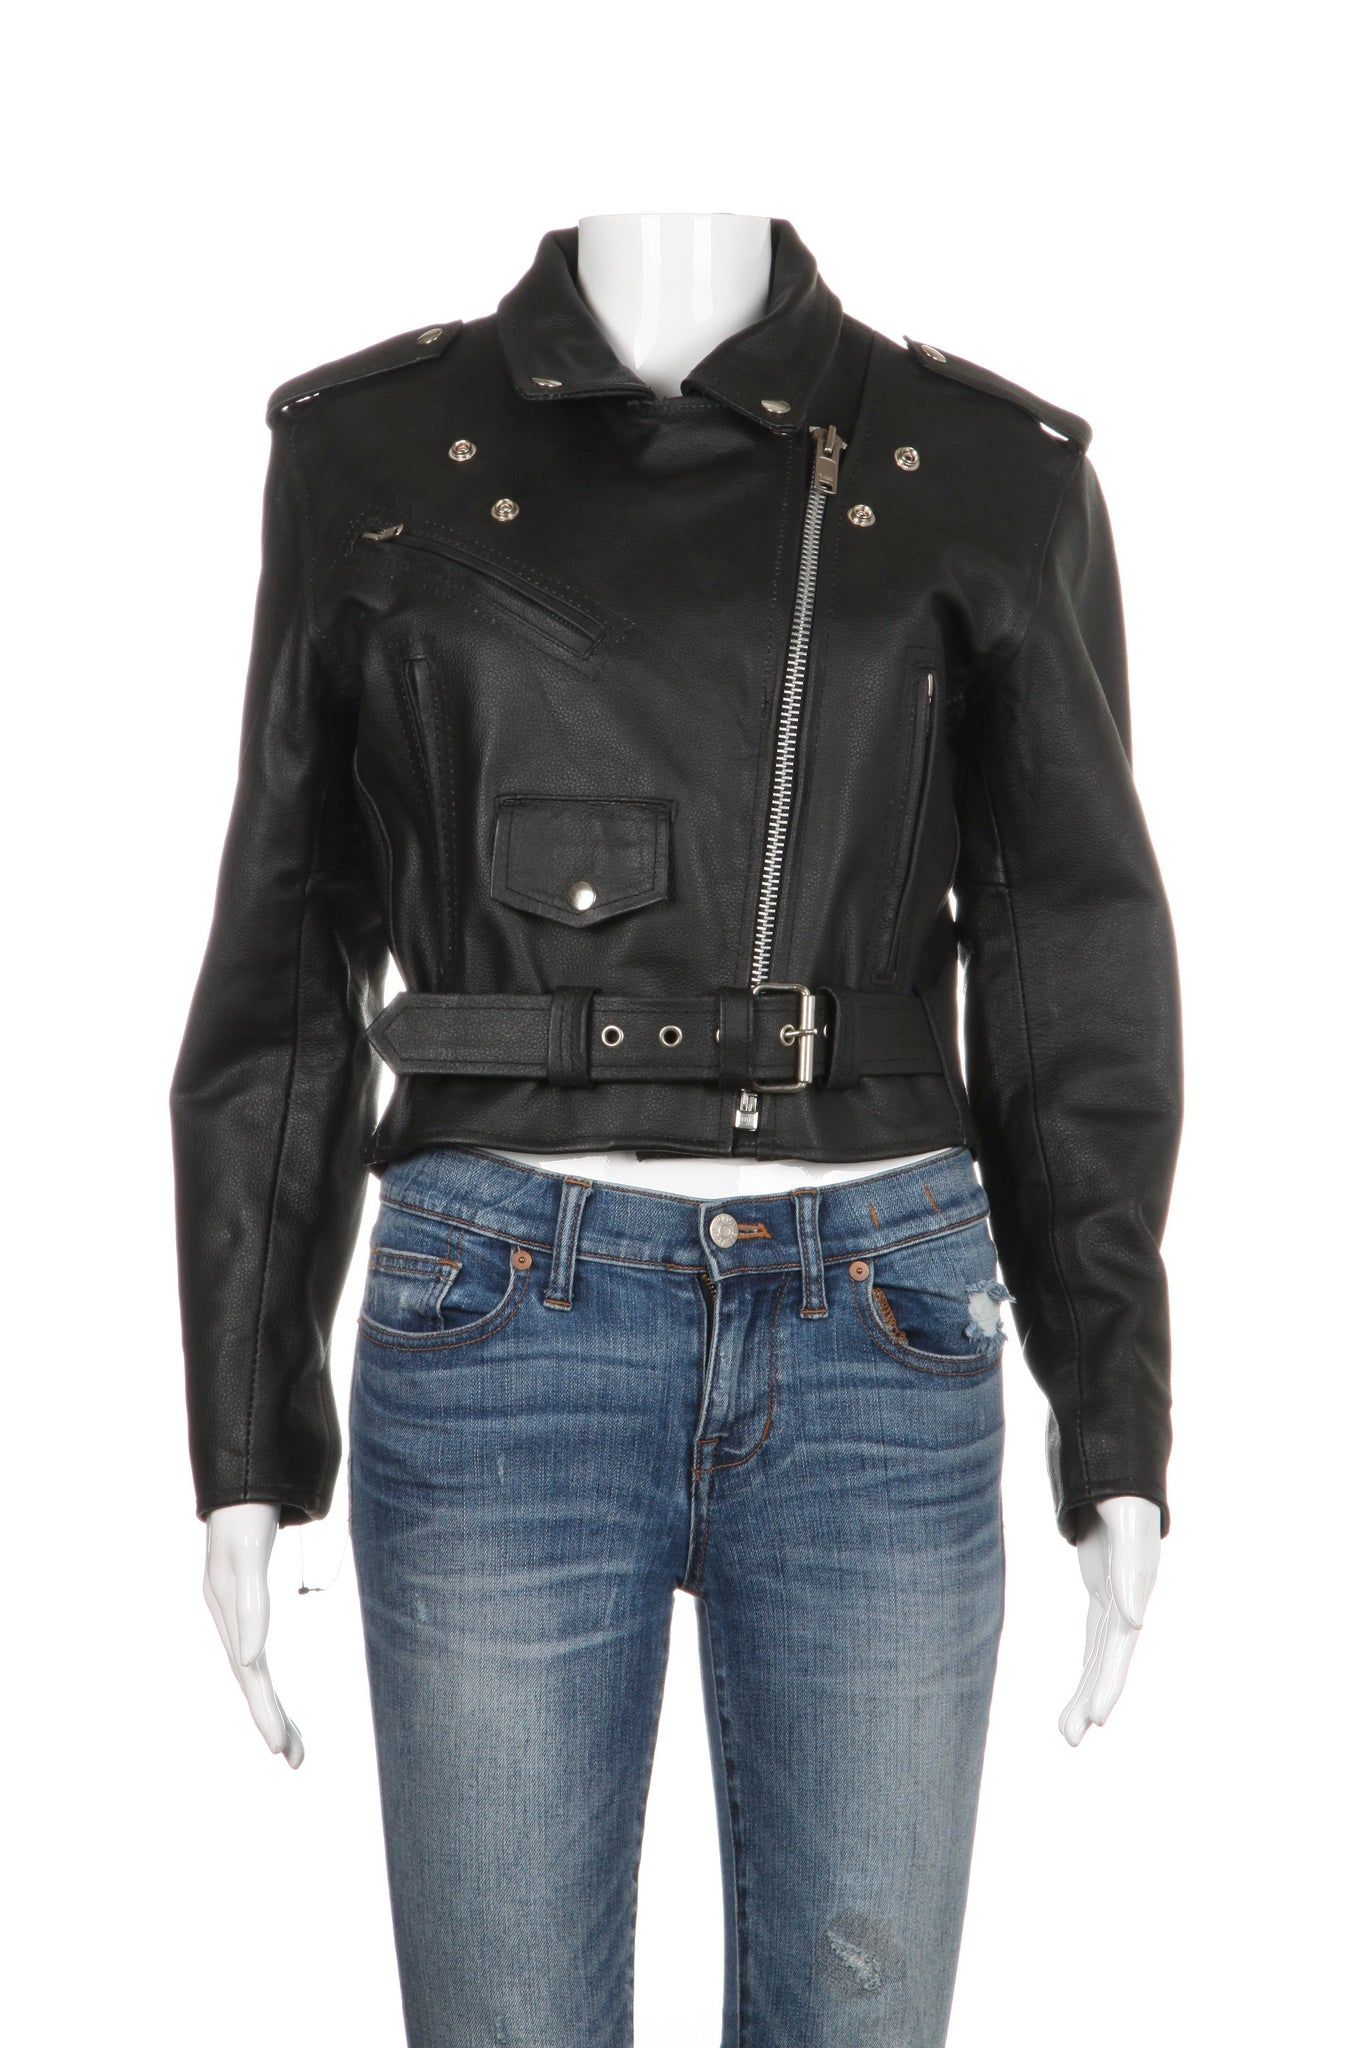 IK LEATHER Motorcycle Leather Jacket